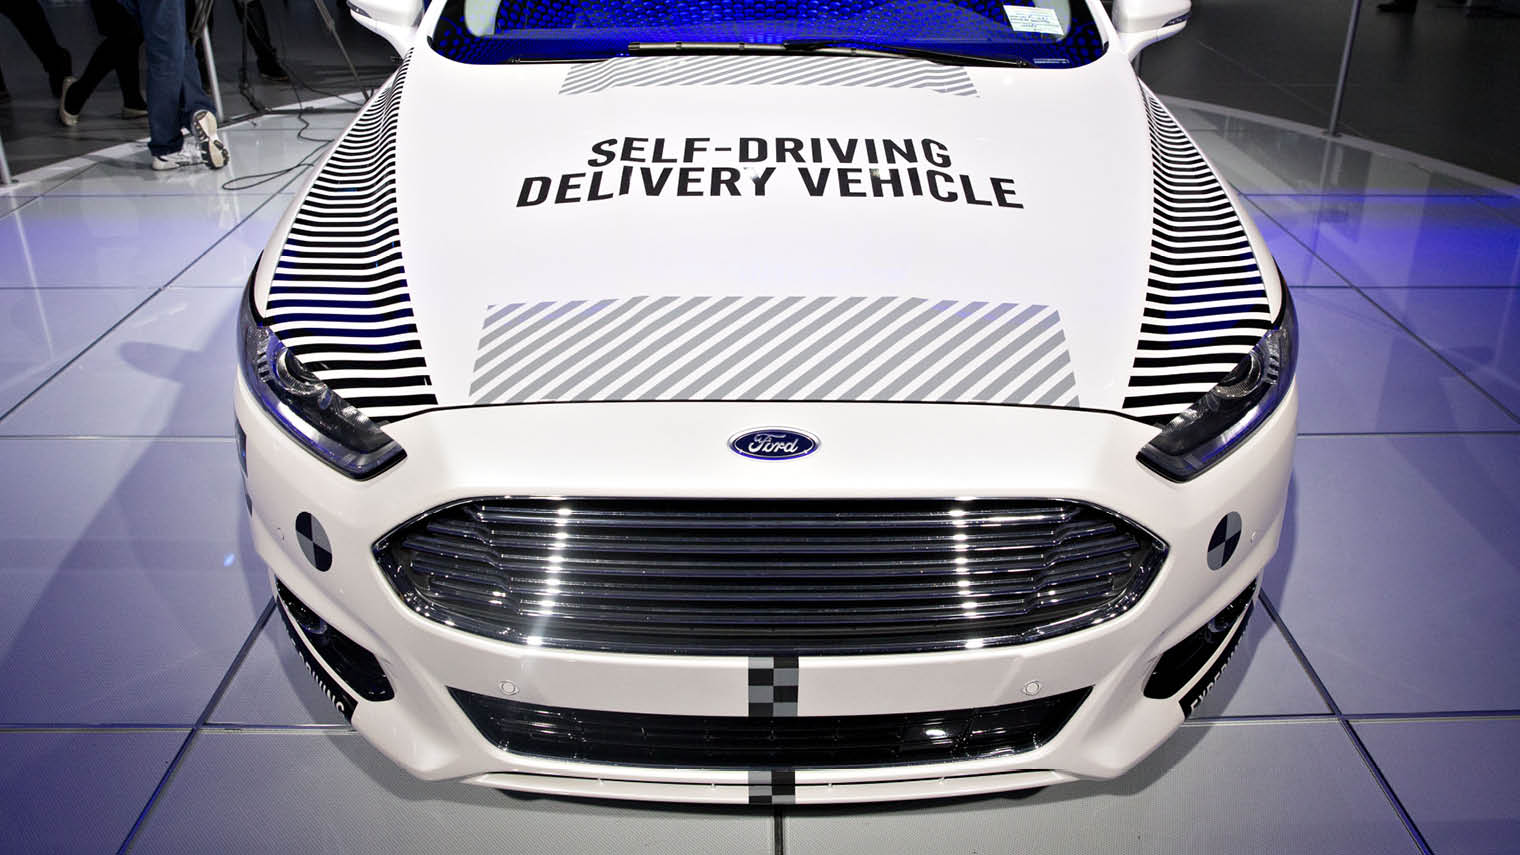 Ford Fusion self-driving car on display at this year's Detroit North American International Auto Show